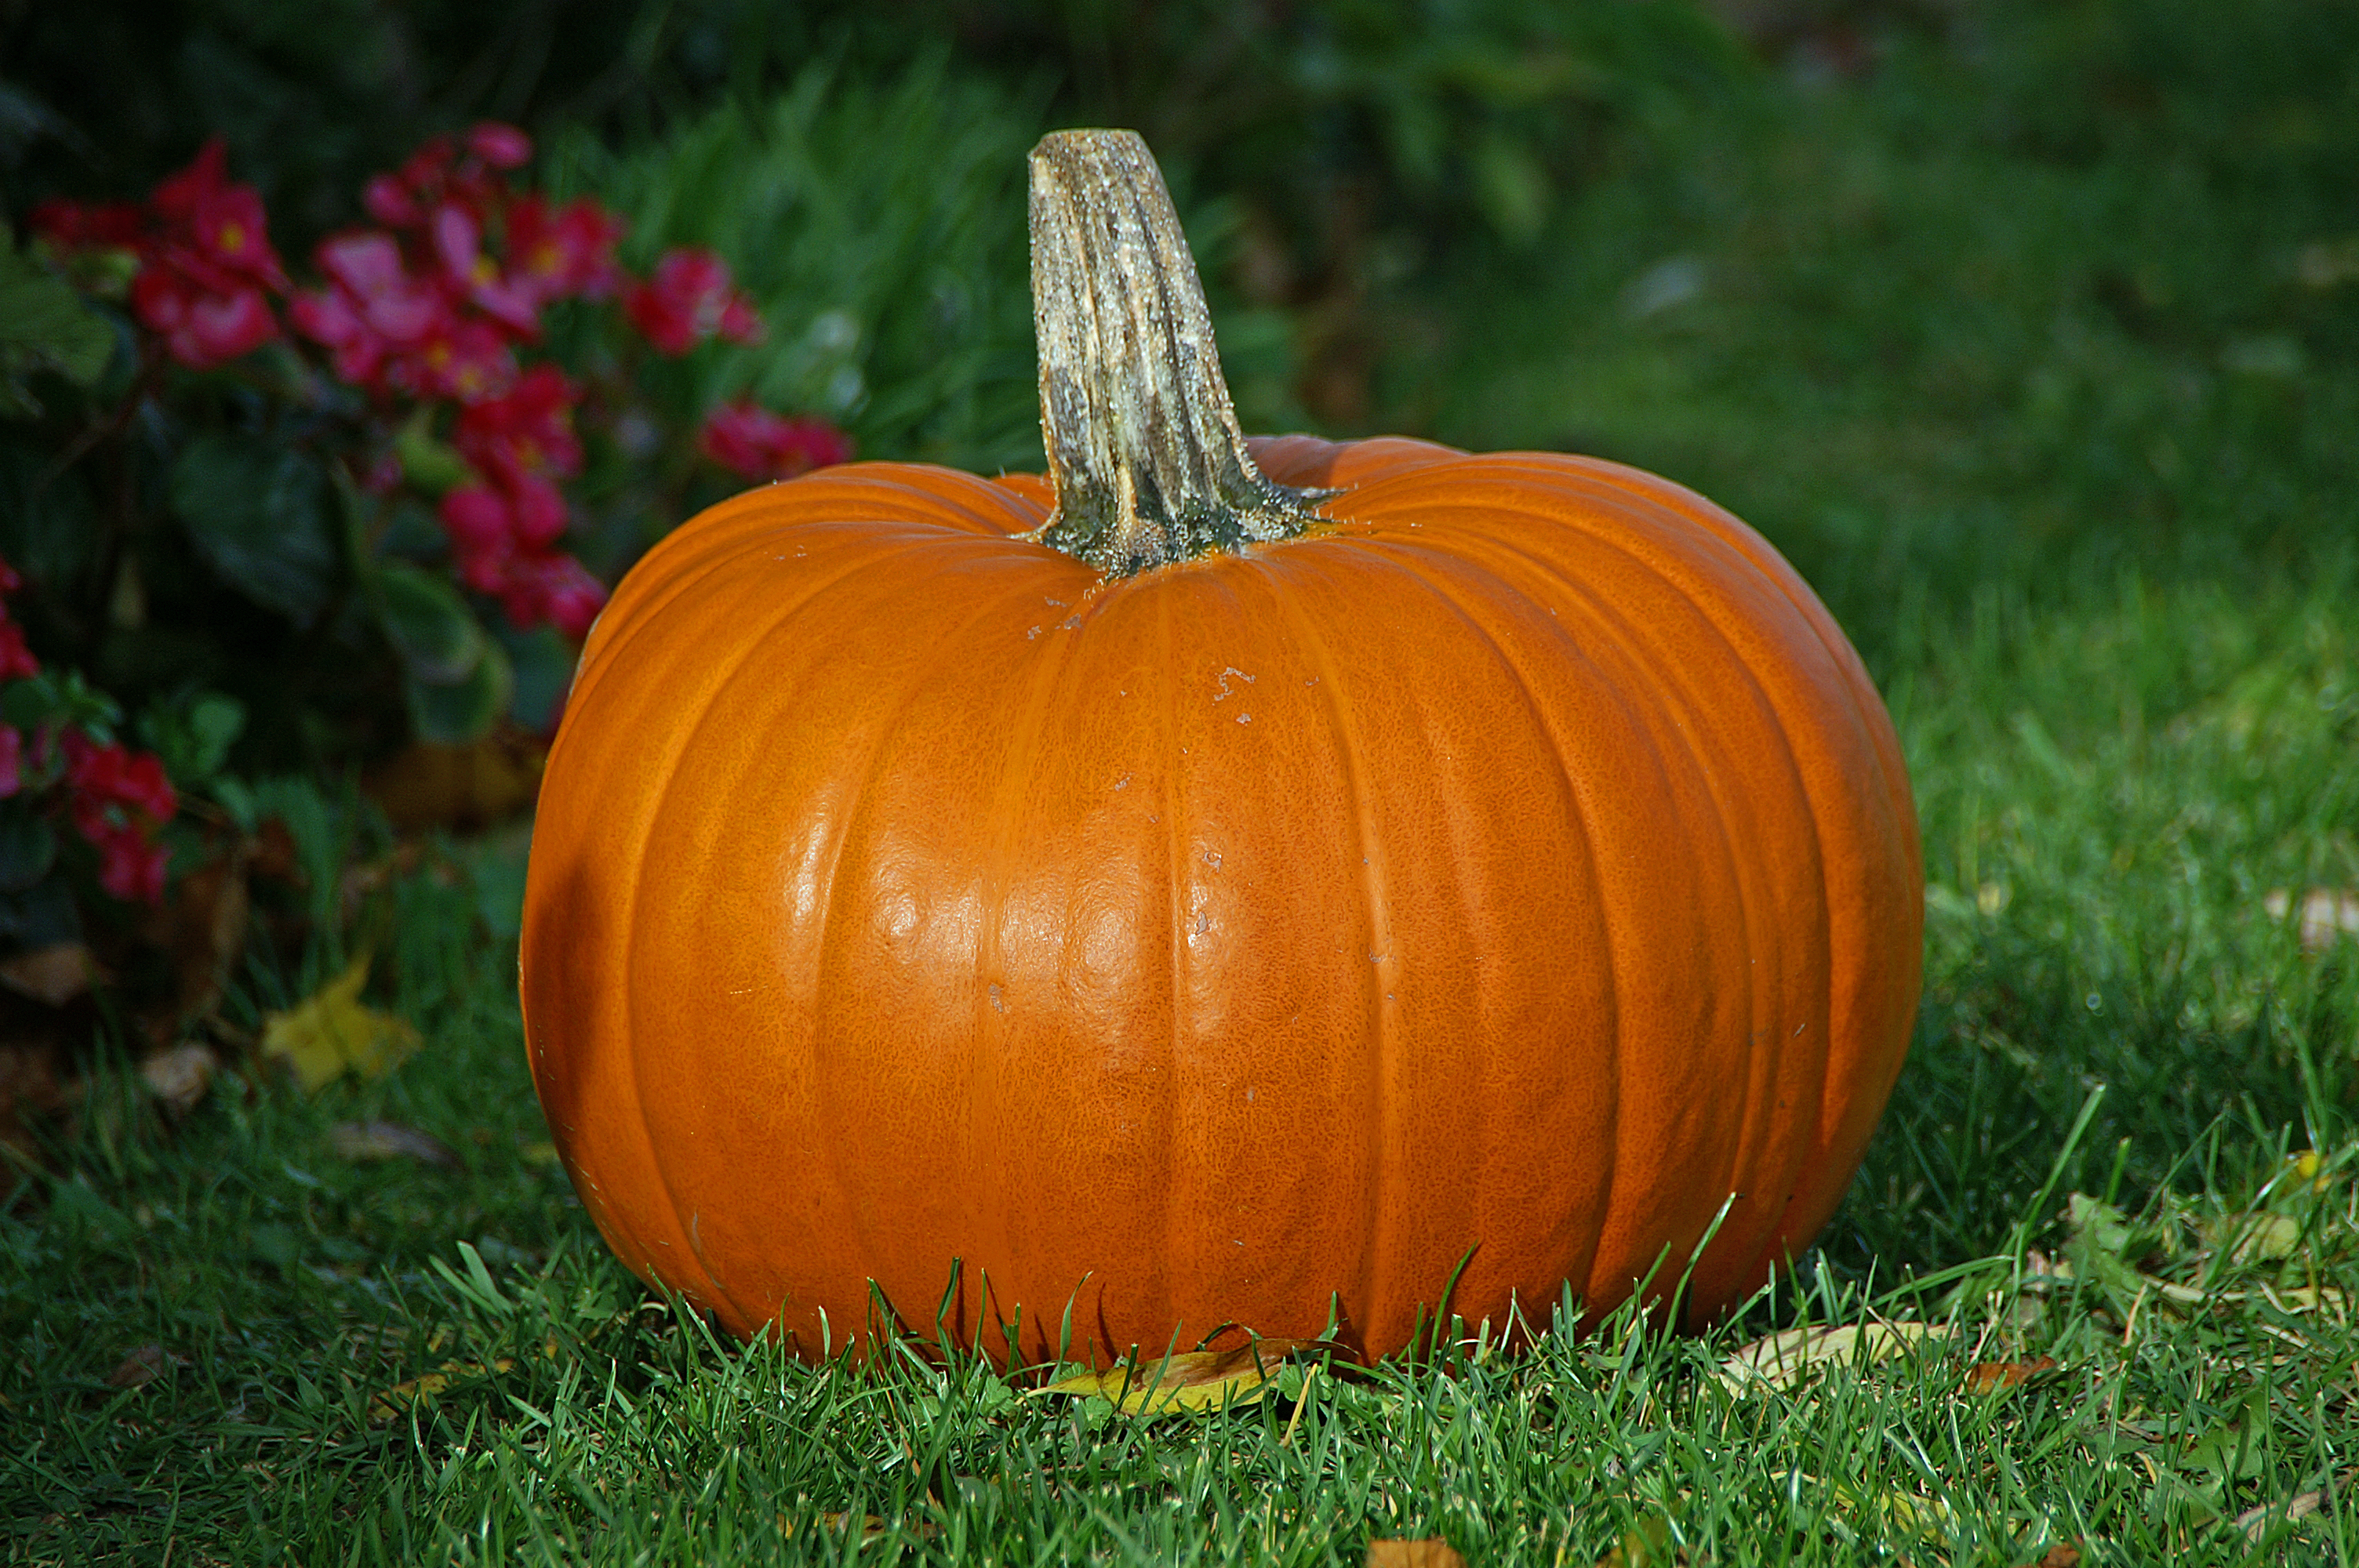 File:Pumpkin.jpg - Wikimedia Commons